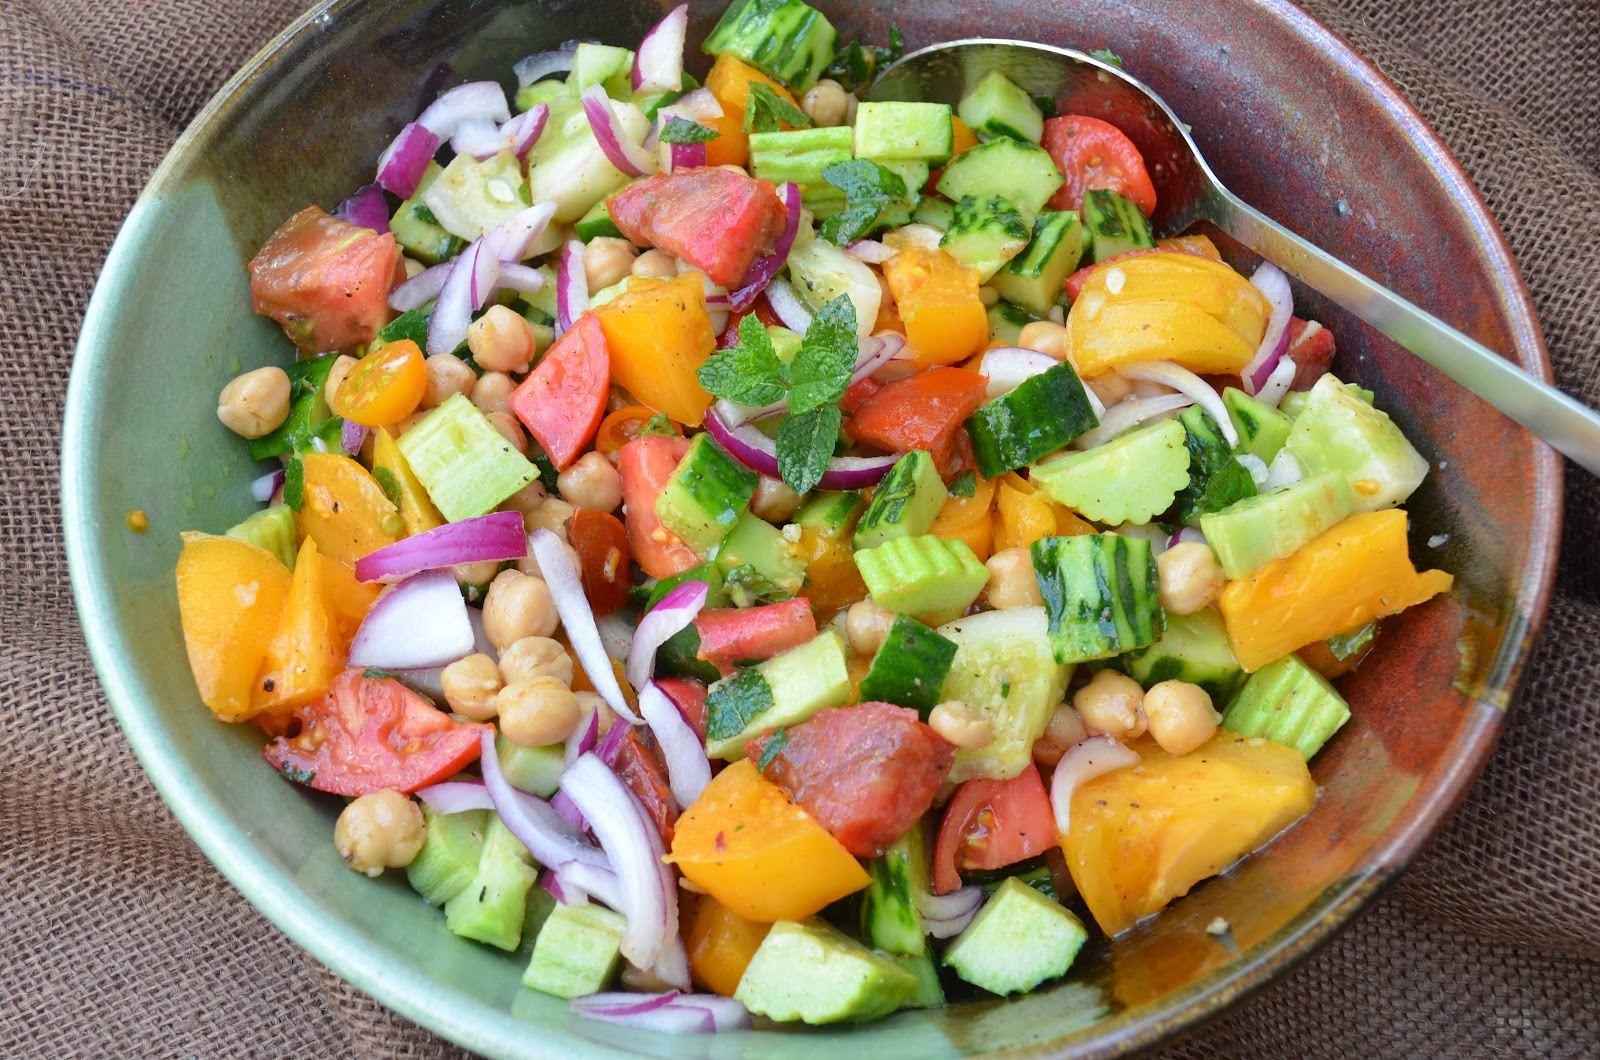 cucumber tomato salad ingredients 2 3 pounds assorted cucumbers and